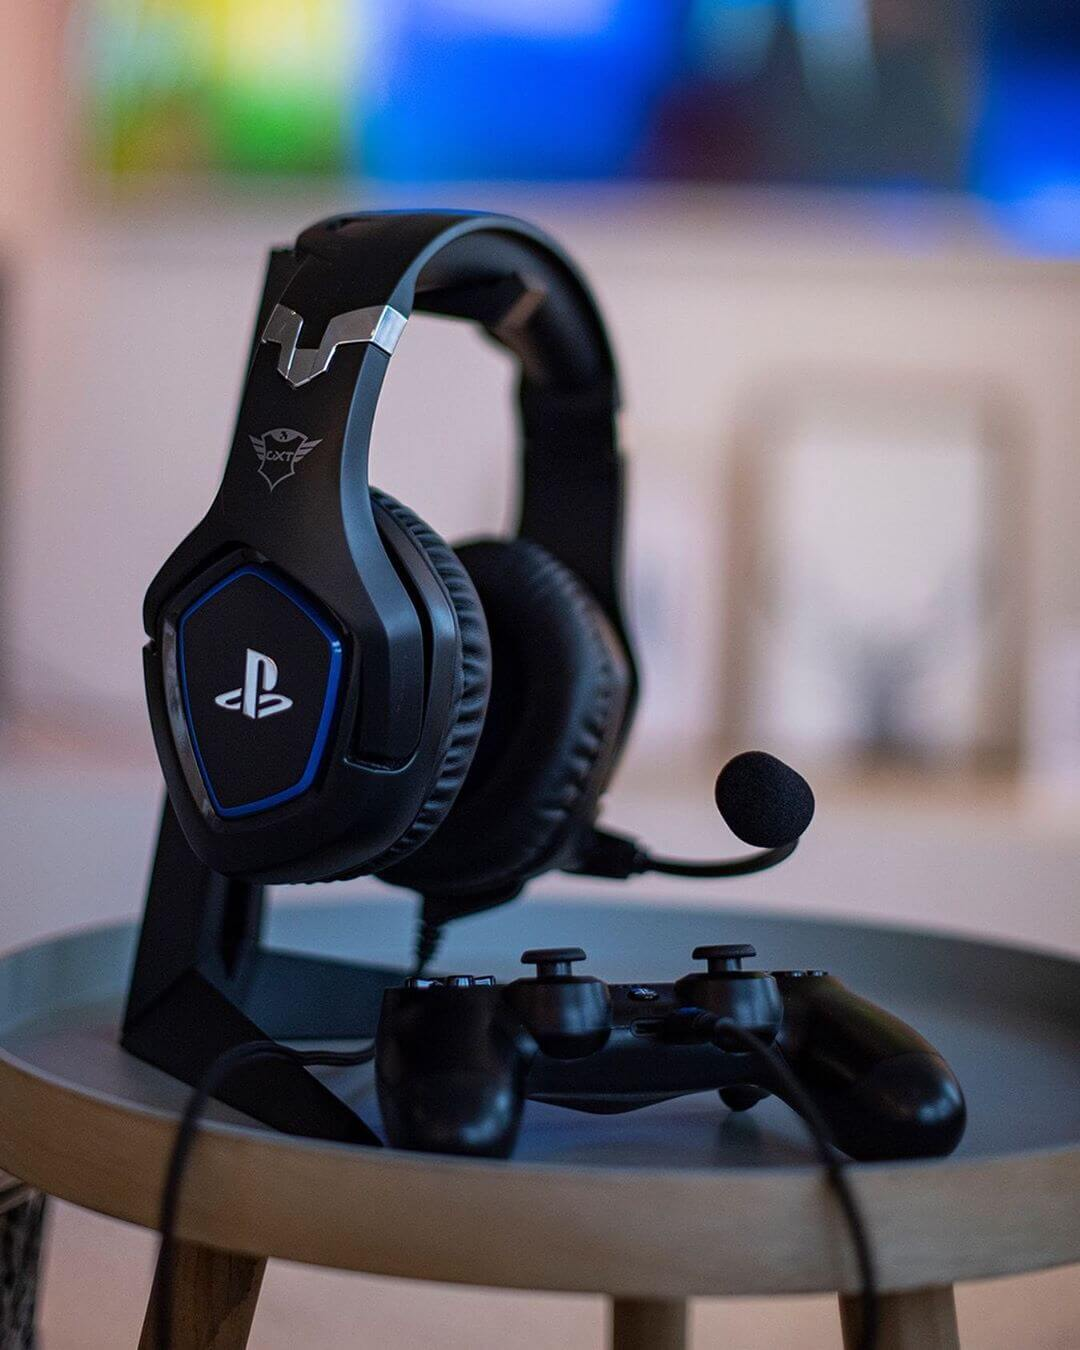 Gaming headset - desk accessories